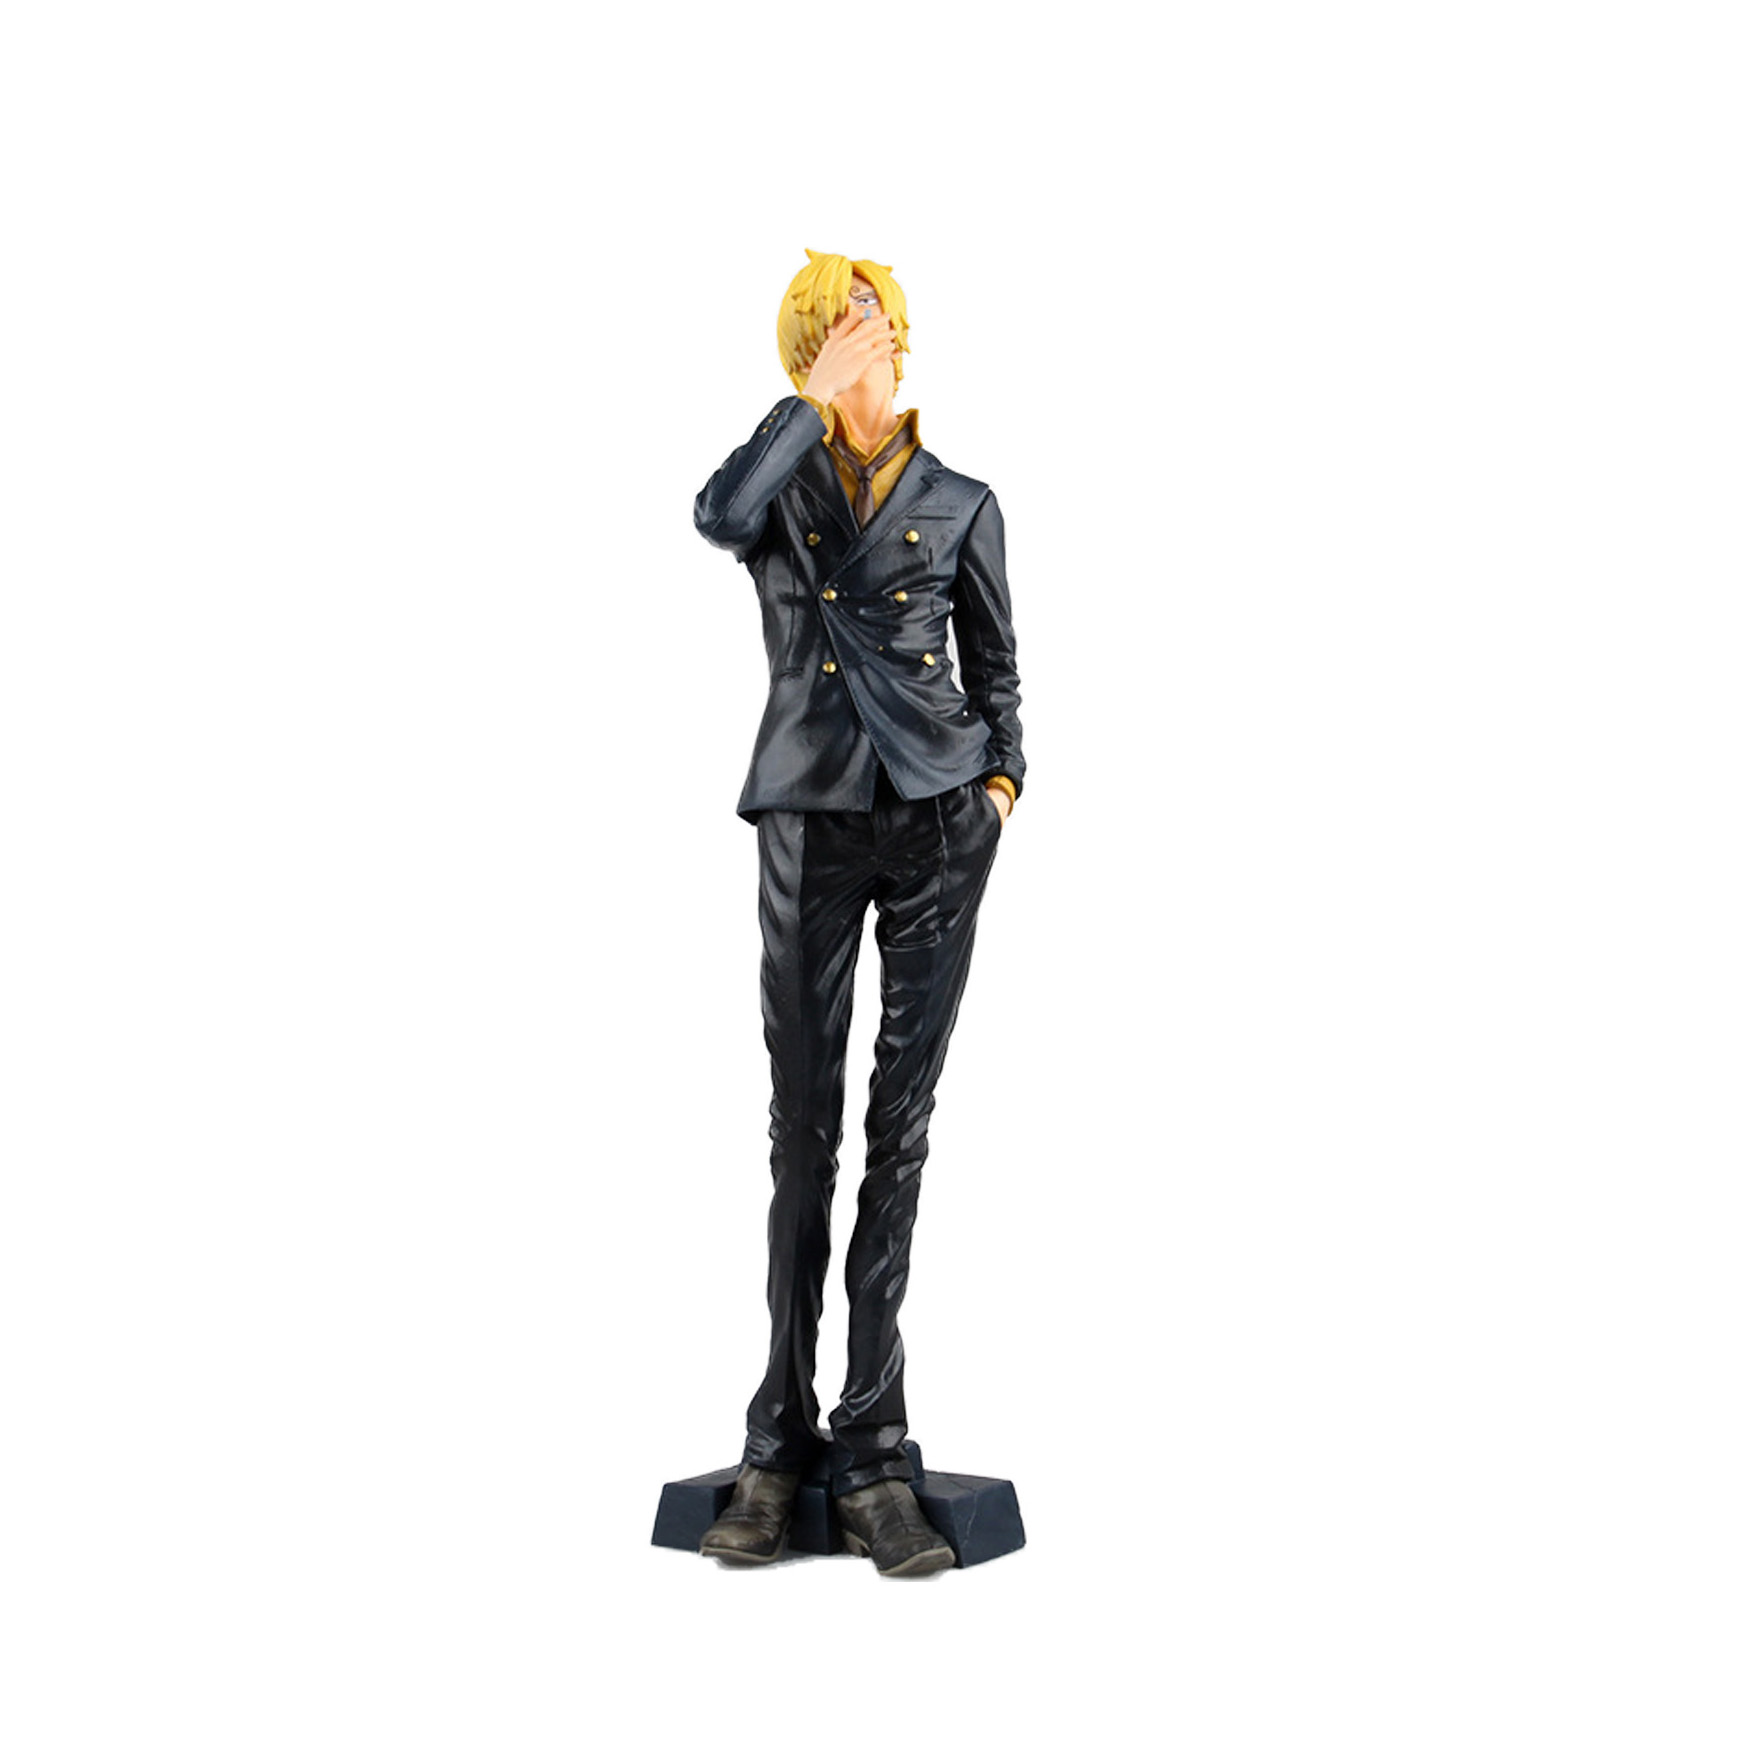 Chanycore Anime ONE PIECE DOA BIG DXF New World Vinsmoke Sanji 26cm Action Figures PVC onepiece toys doll model collection